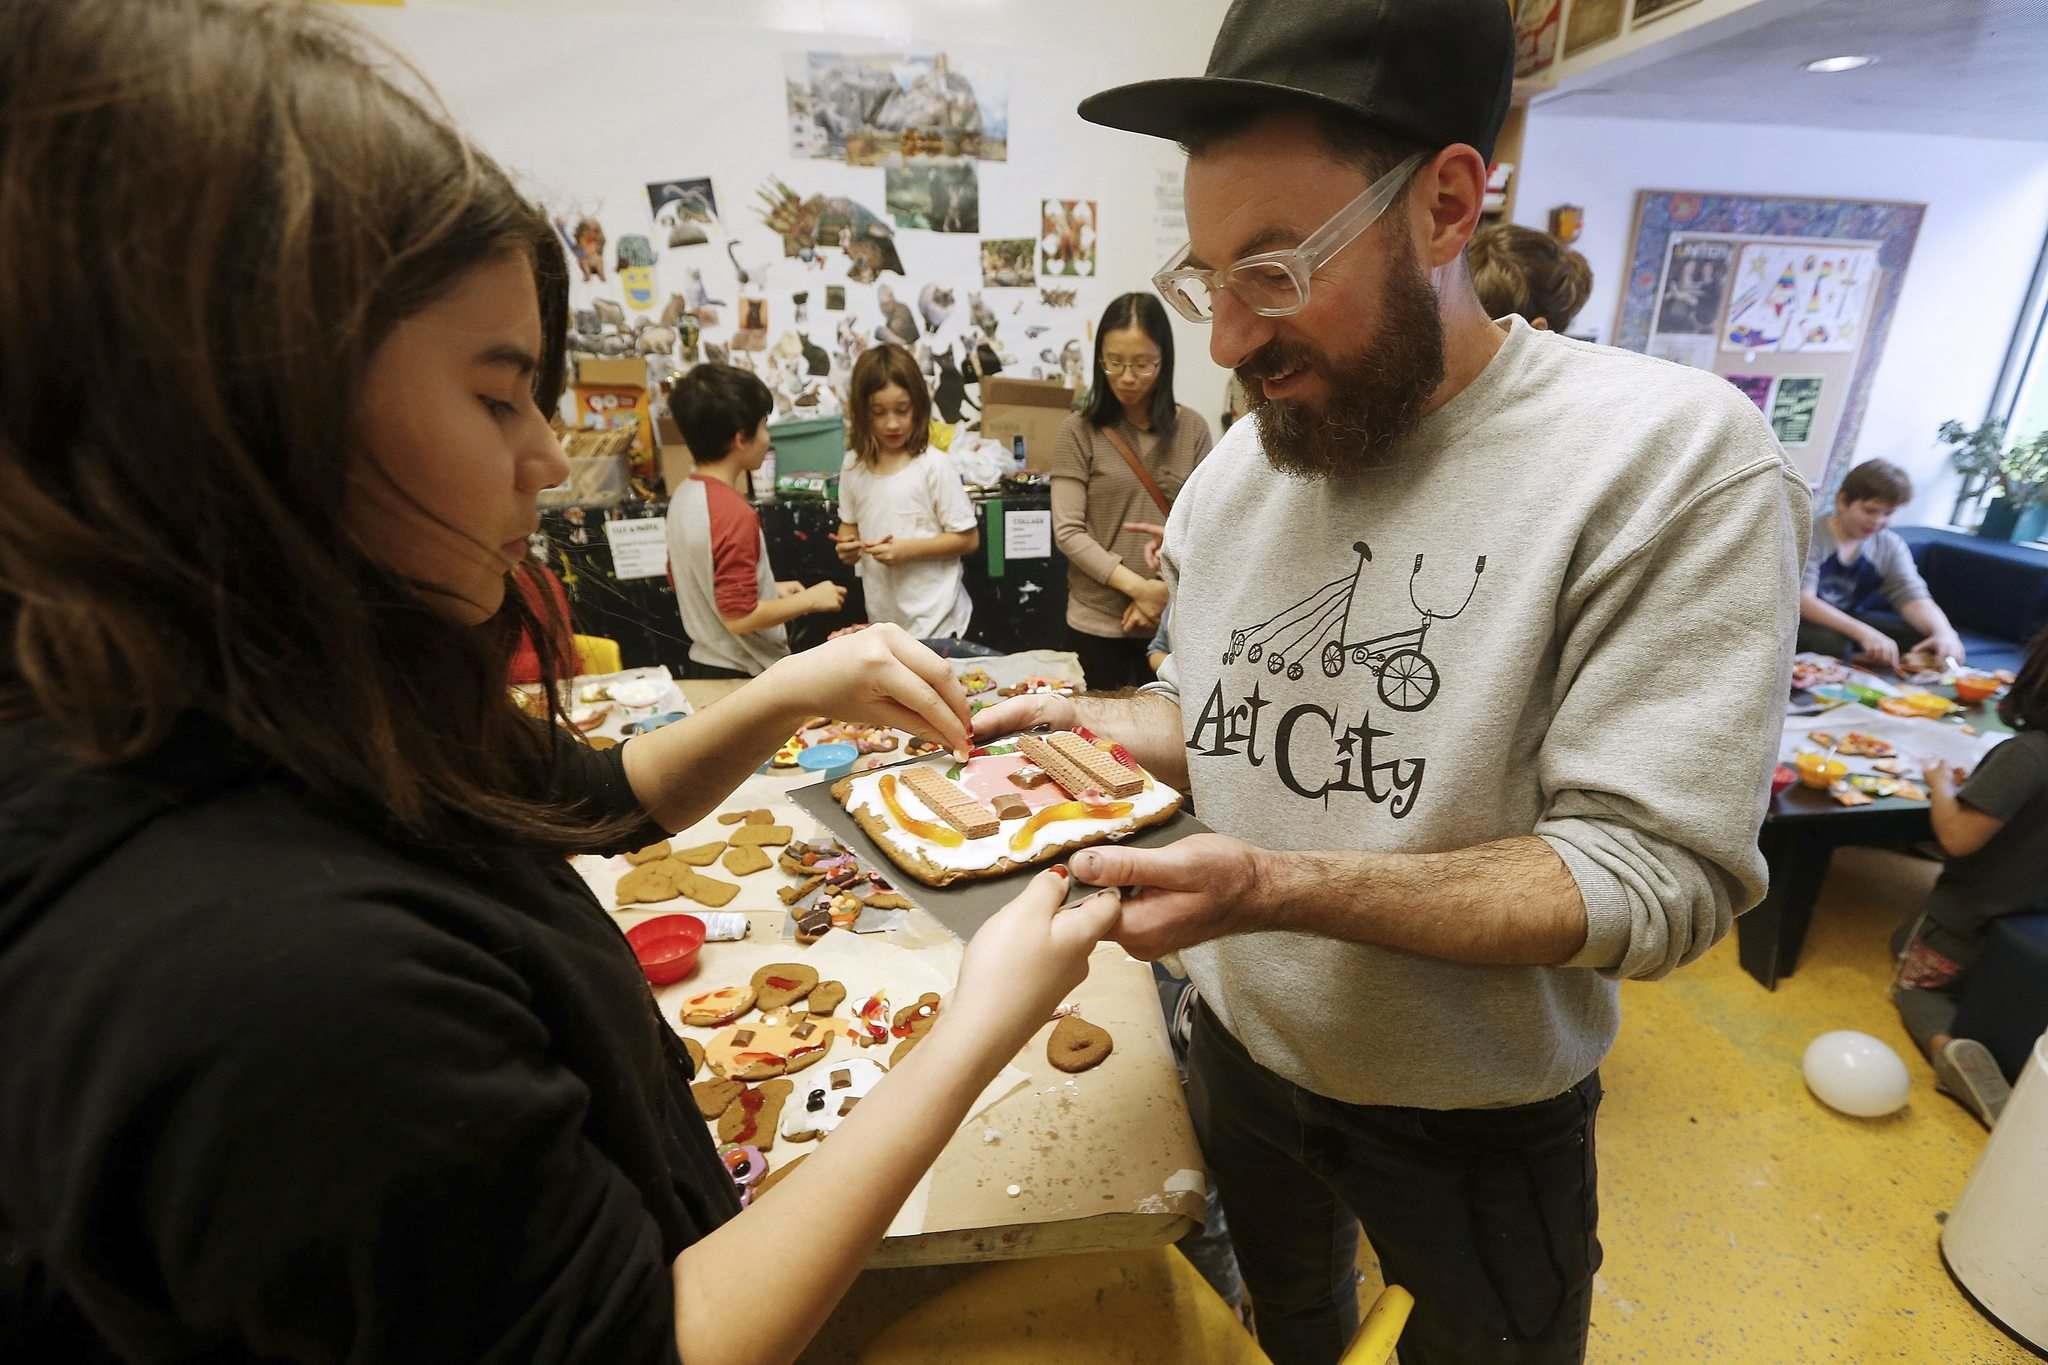 John Woods / Winnipeg Free Press</p><p>Eddie Ayoub, right, artistic director, helps children make haunted gingerbread houses at Art City in Winnipeg Monday.</p>